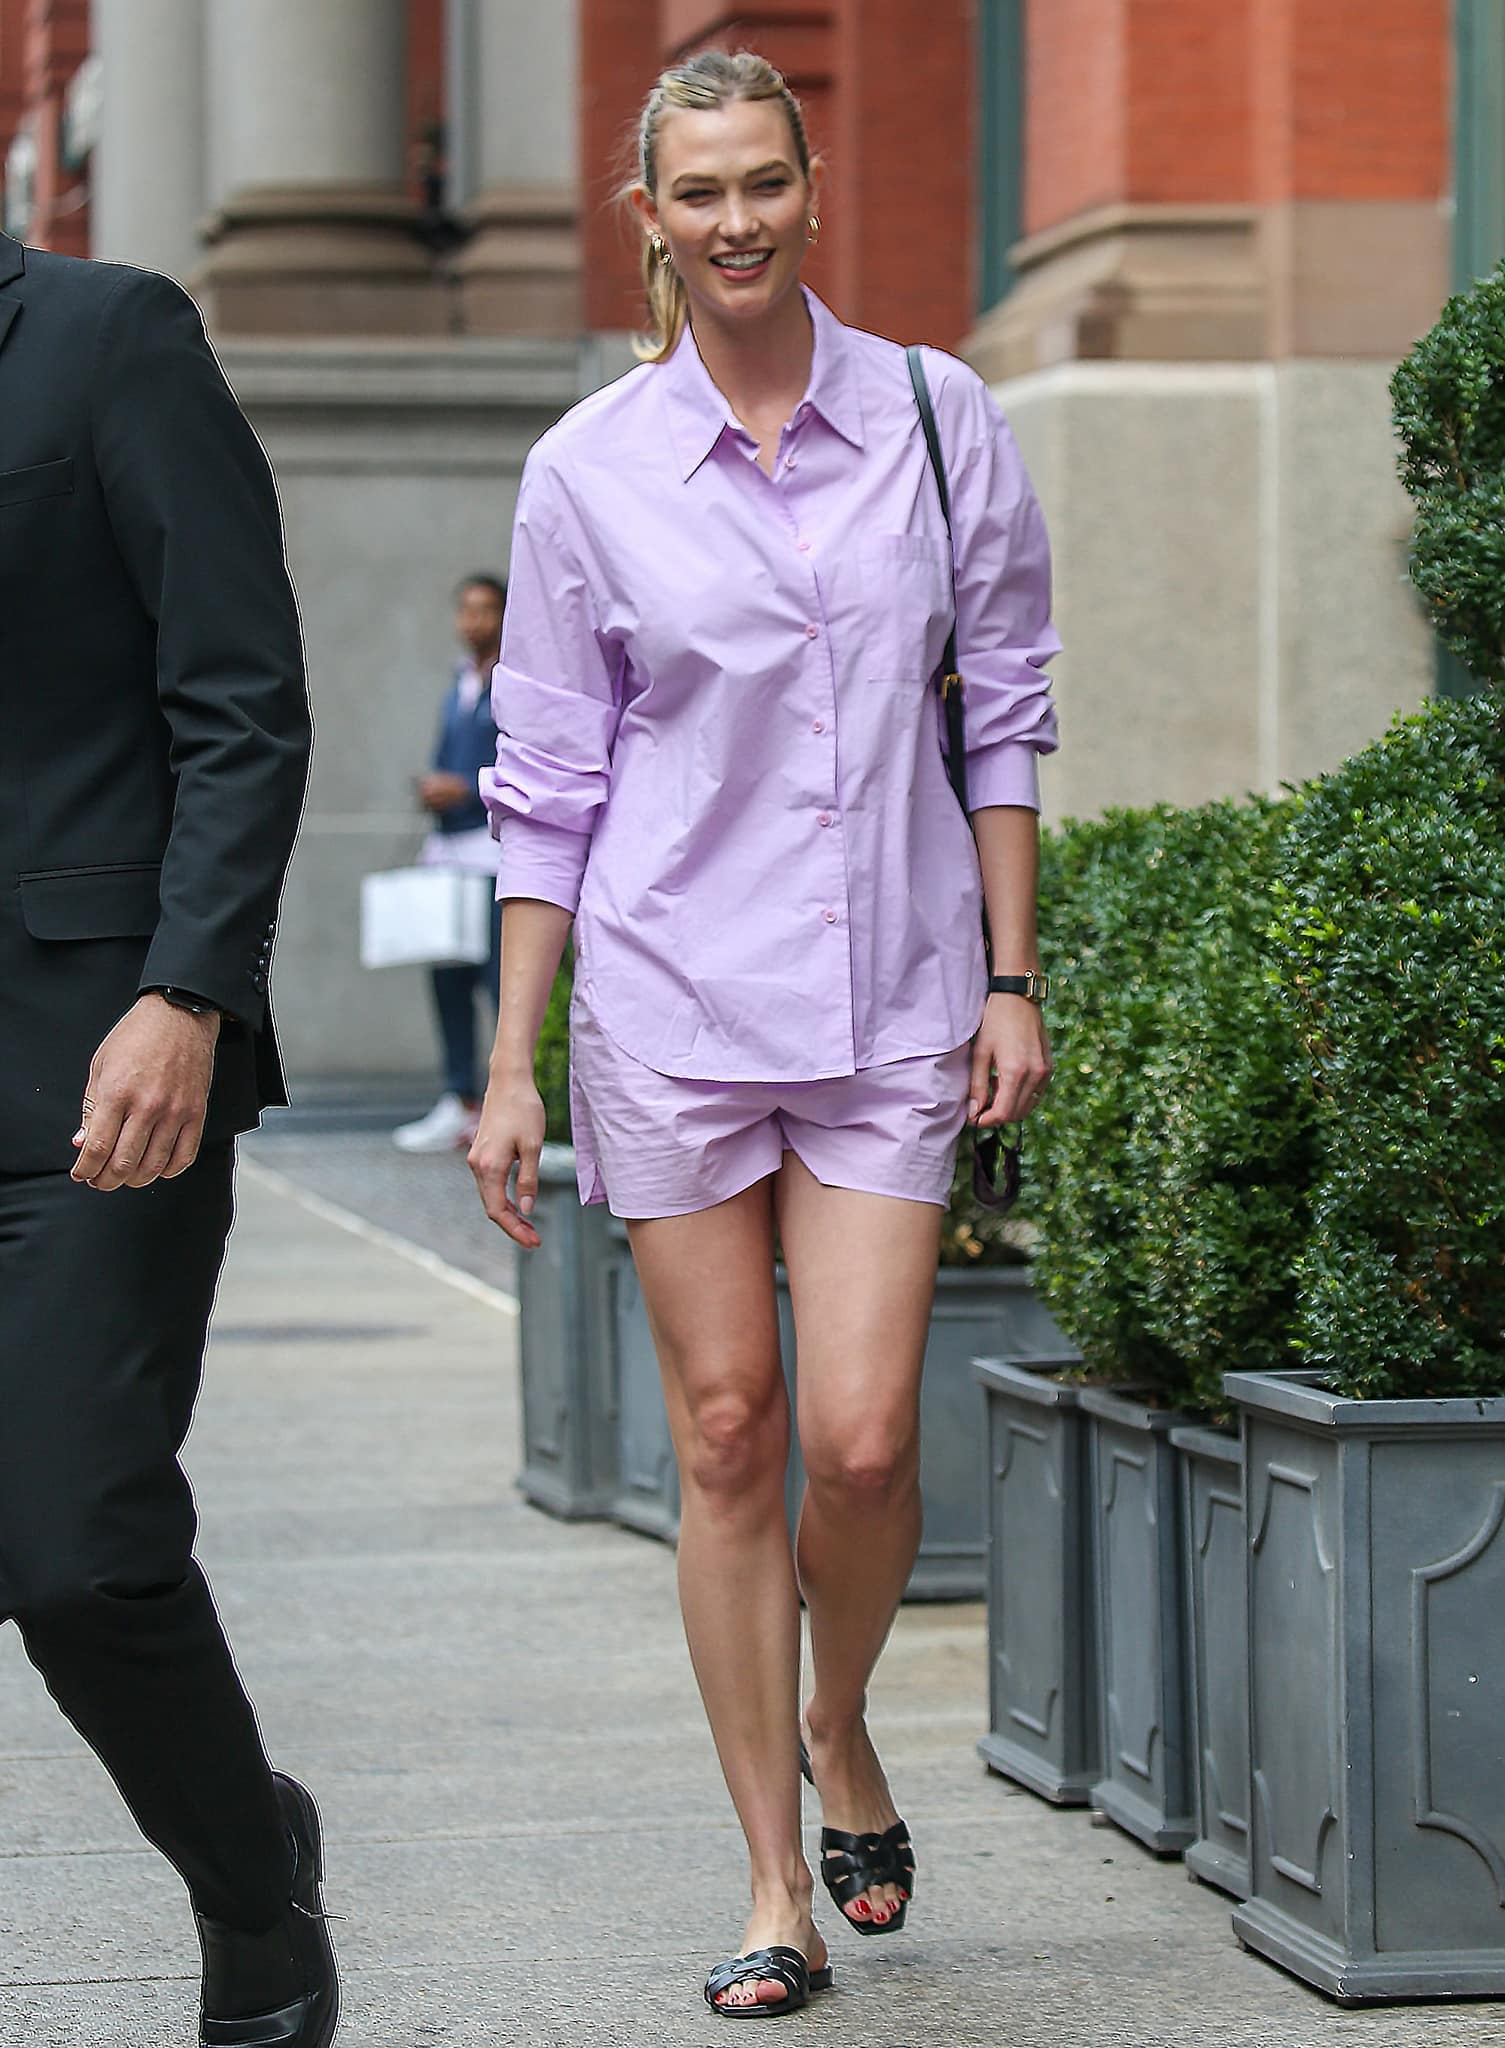 Karlie Kloss looks radiant in The Frankie Shop petal shirt and shorts set